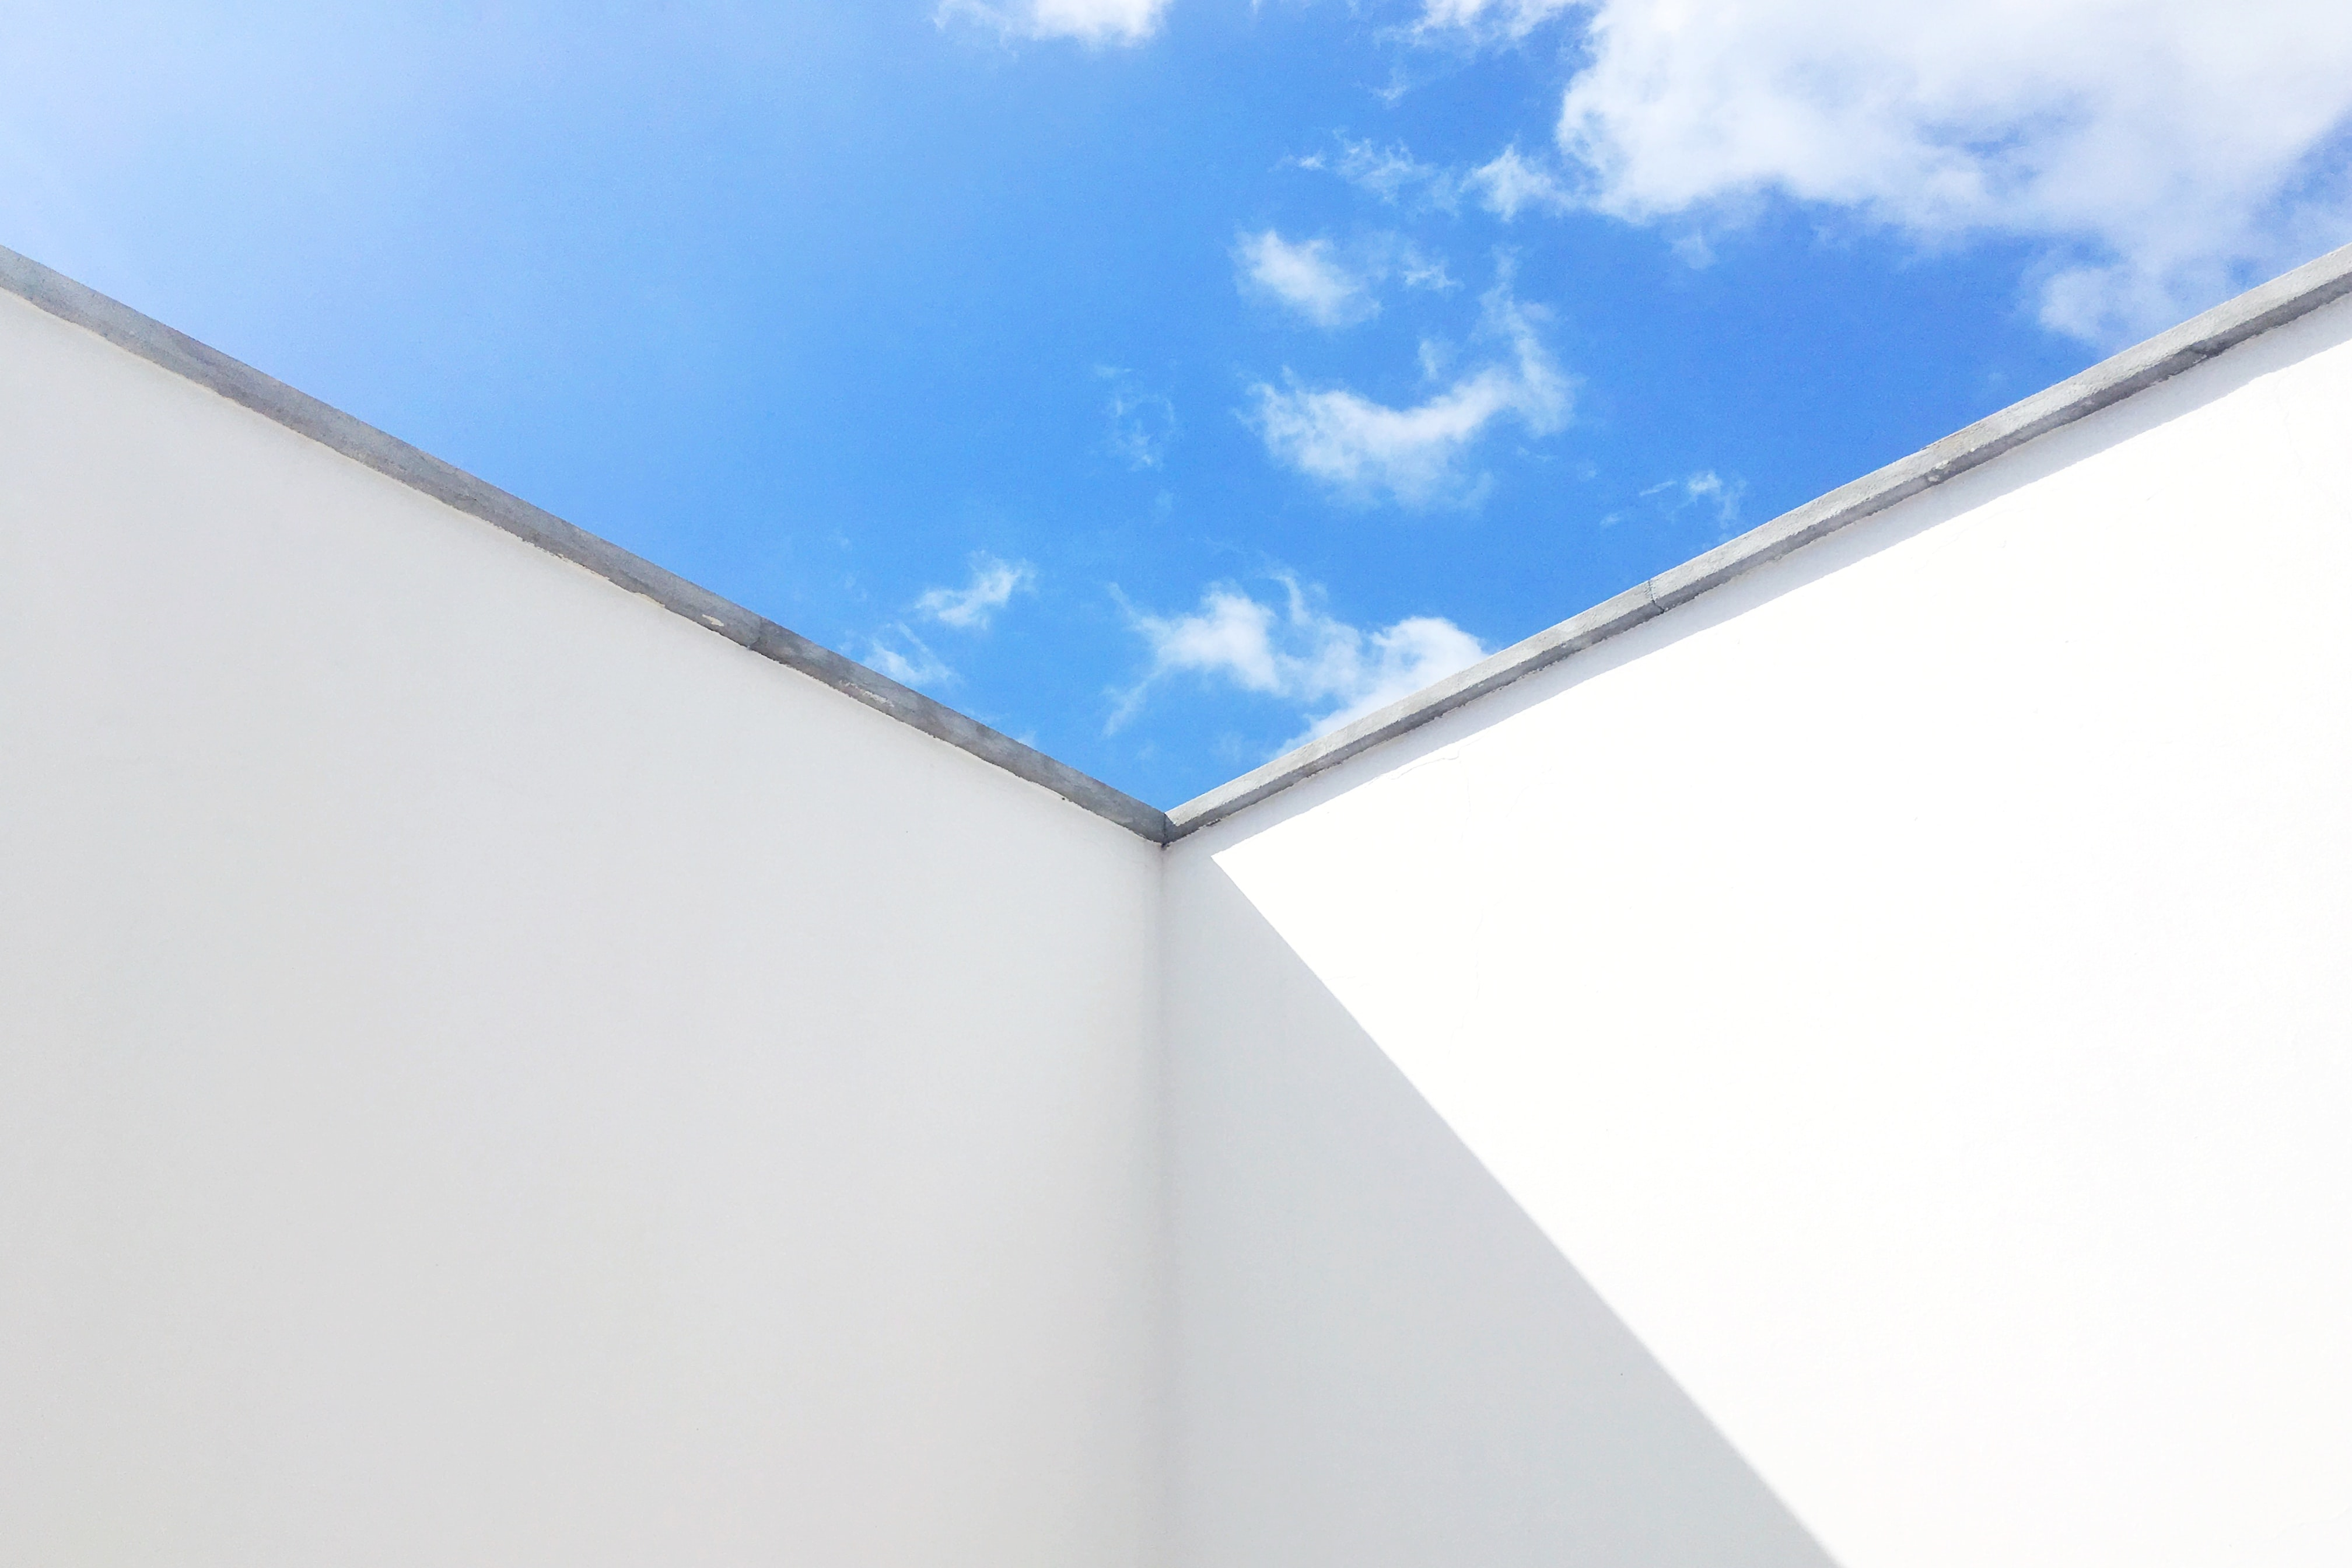 white painted wall under blue and white skies